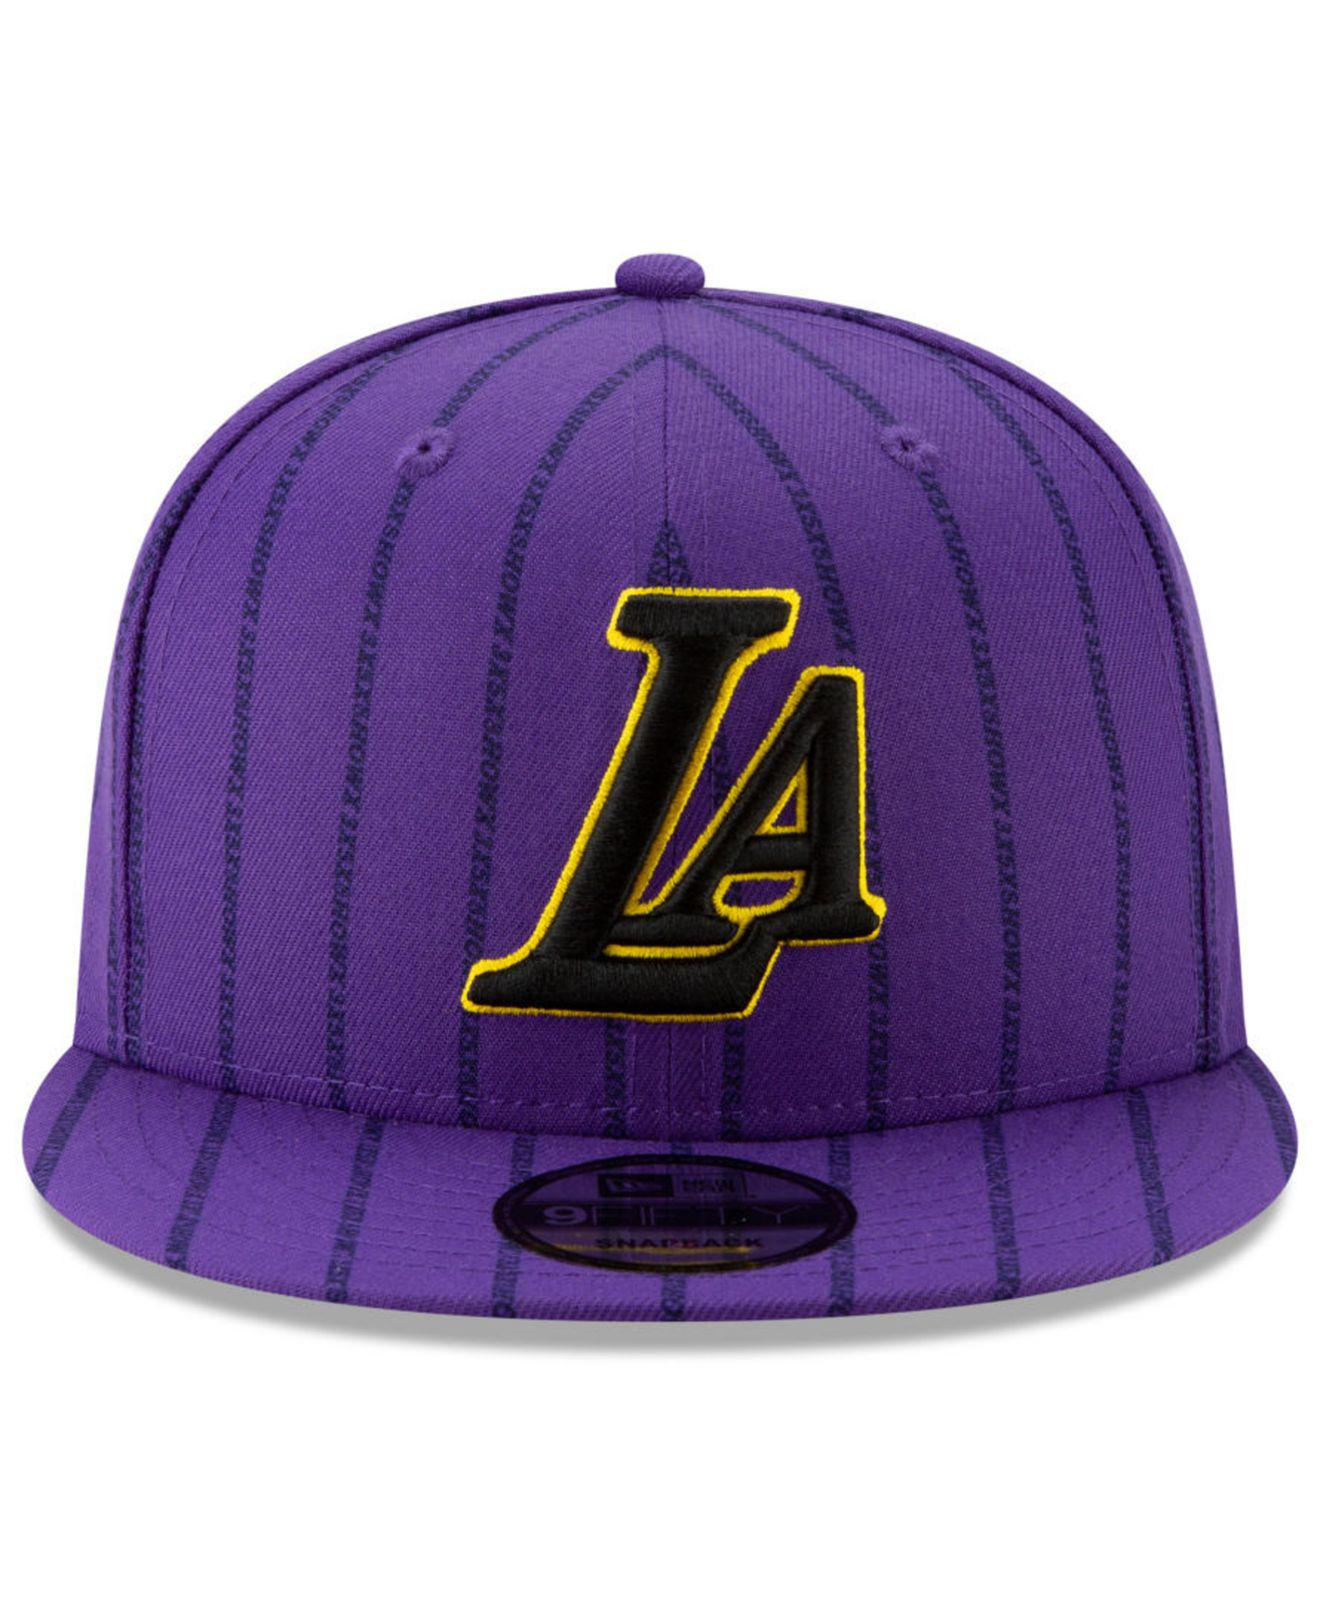 new arrival bce35 252d3 Lyst - KTZ Los Angeles Lakers City Series 2.0 9fifty Snapback Cap in Purple  for Men